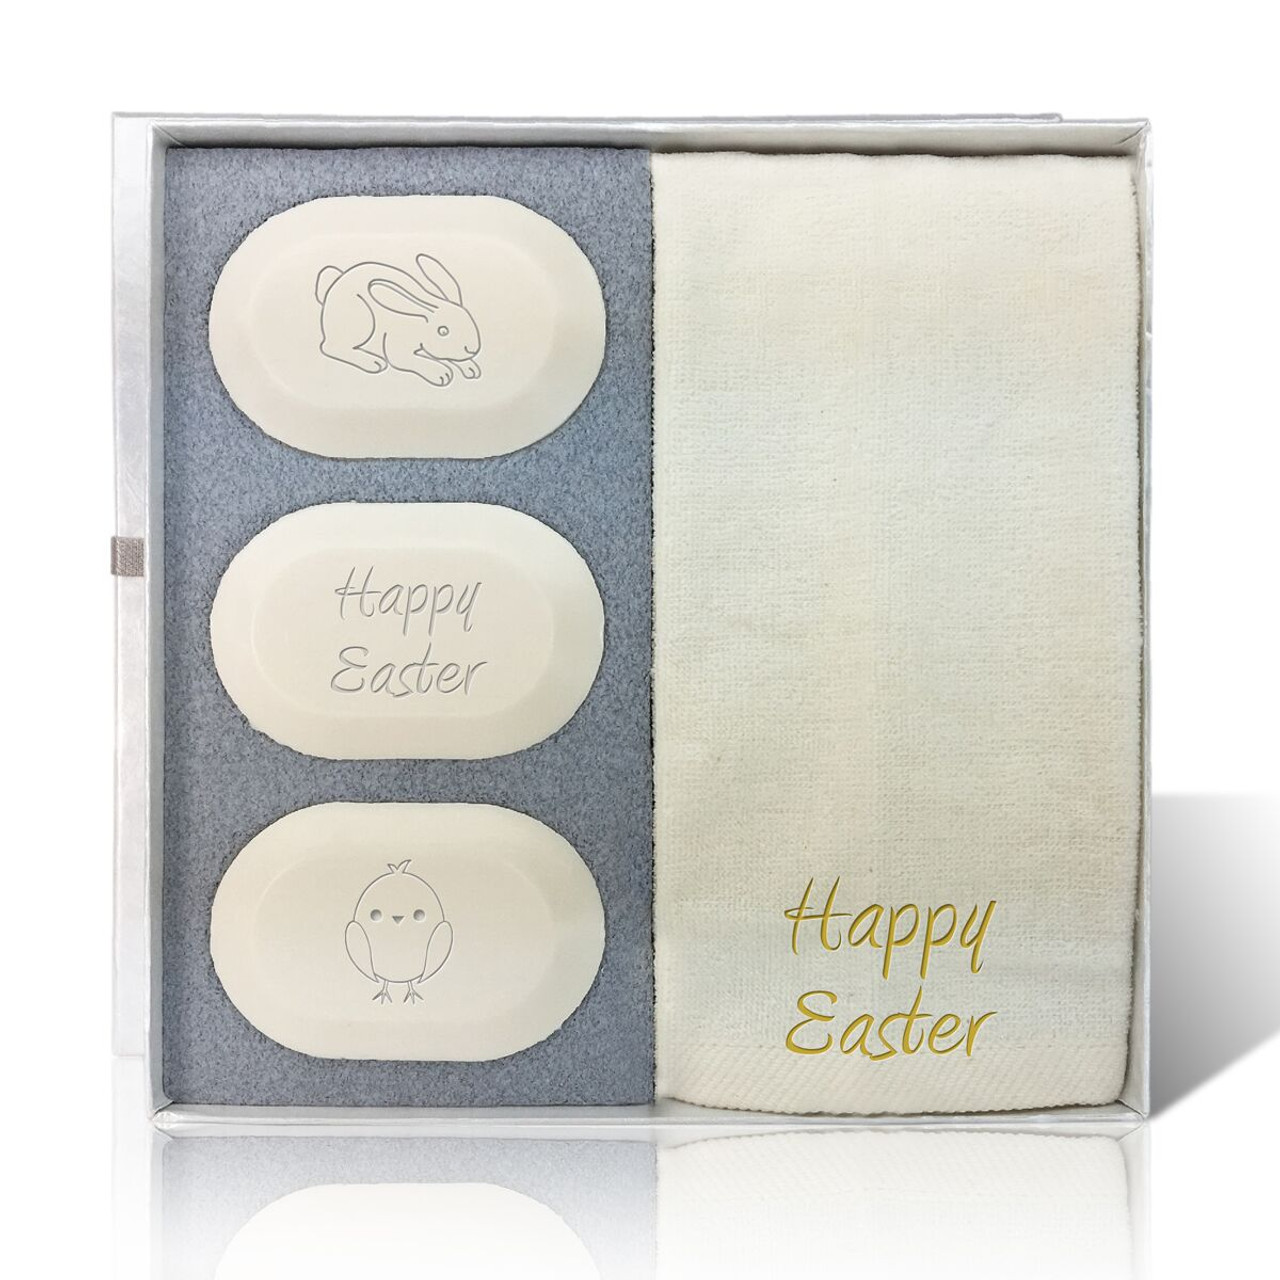 Eco luxury courtesy gift set easter eco luxury gift set easter negle Image collections